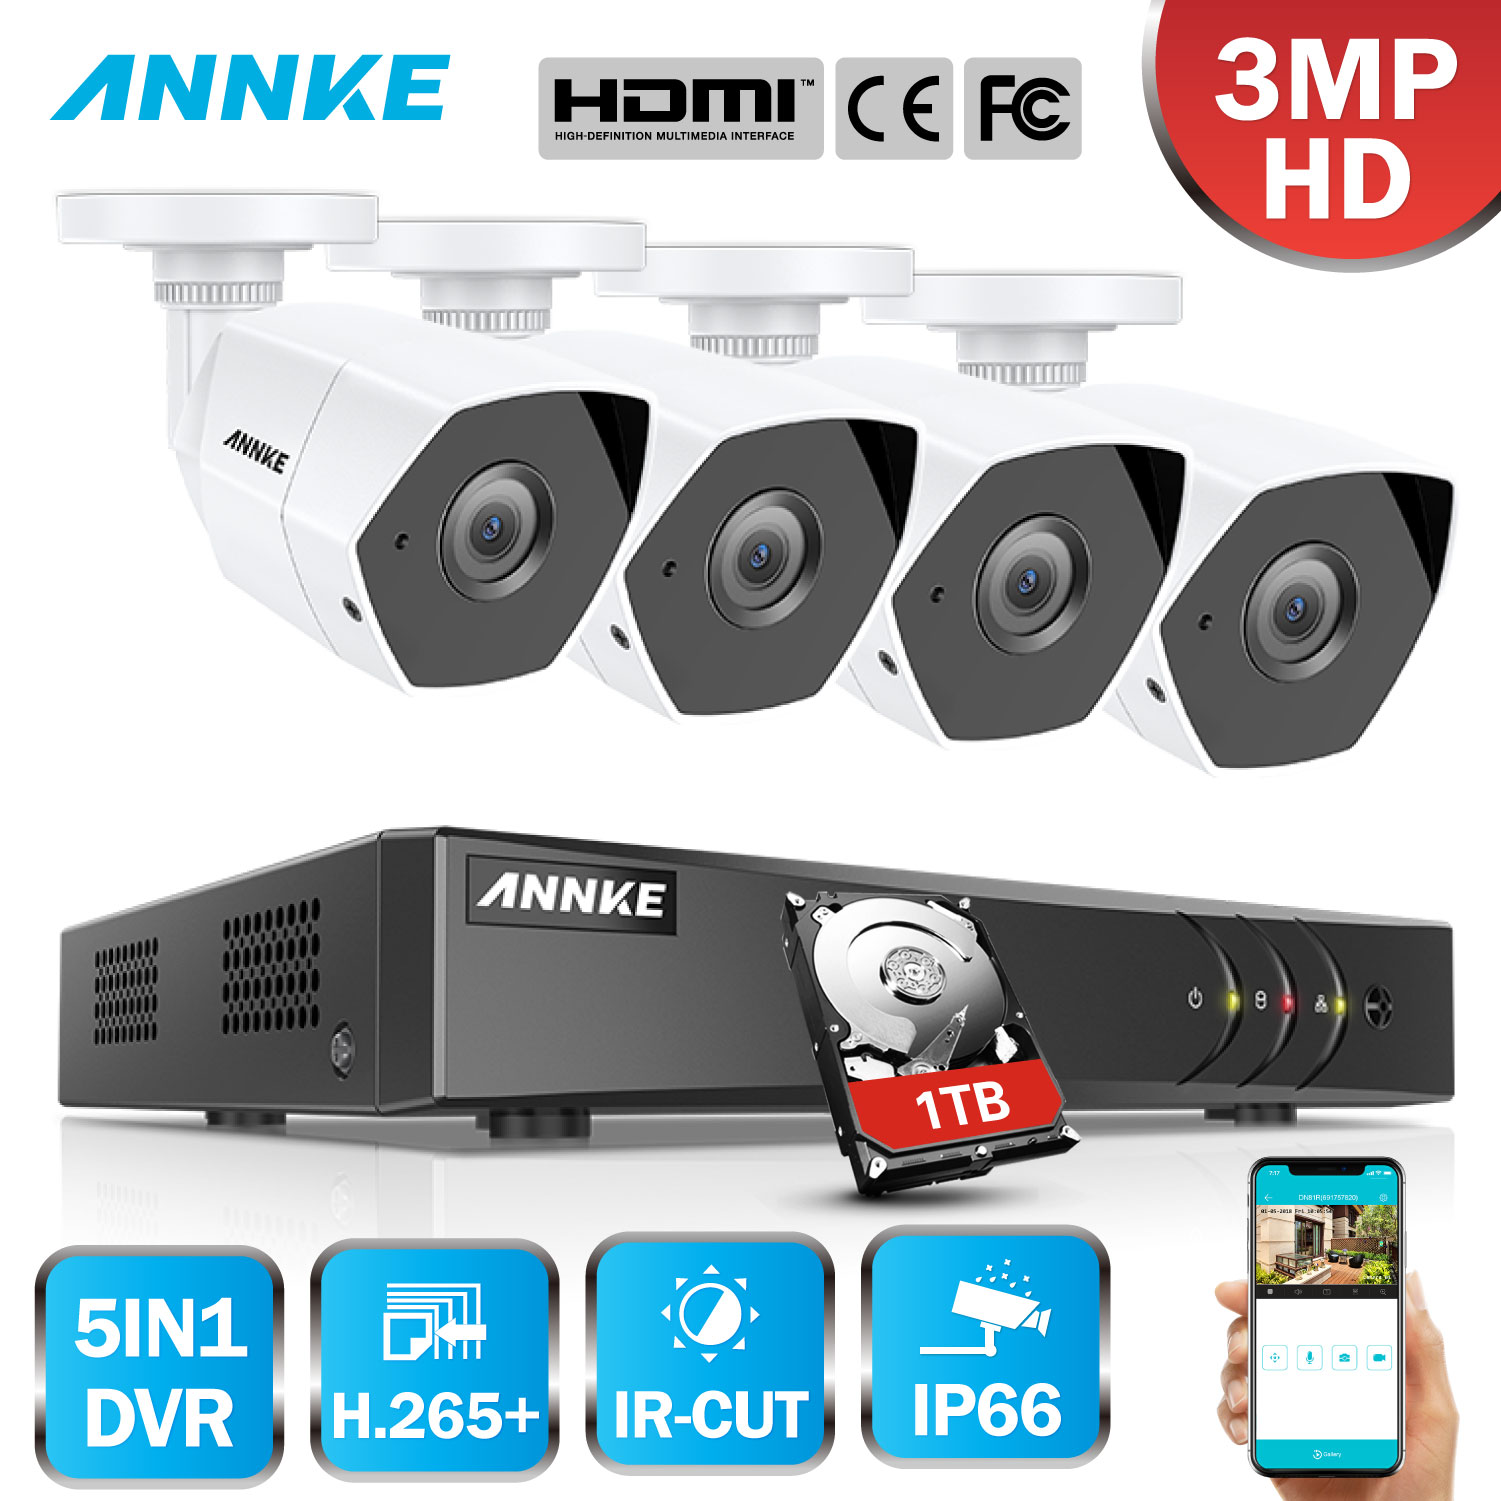 ANNKE Full HD 8CH 3MP 5in1 Security DVR System CCTV Kit 4pcs Weatherproof Outdoor Surveillance Bullet Camera Security System KitANNKE Full HD 8CH 3MP 5in1 Security DVR System CCTV Kit 4pcs Weatherproof Outdoor Surveillance Bullet Camera Security System Kit